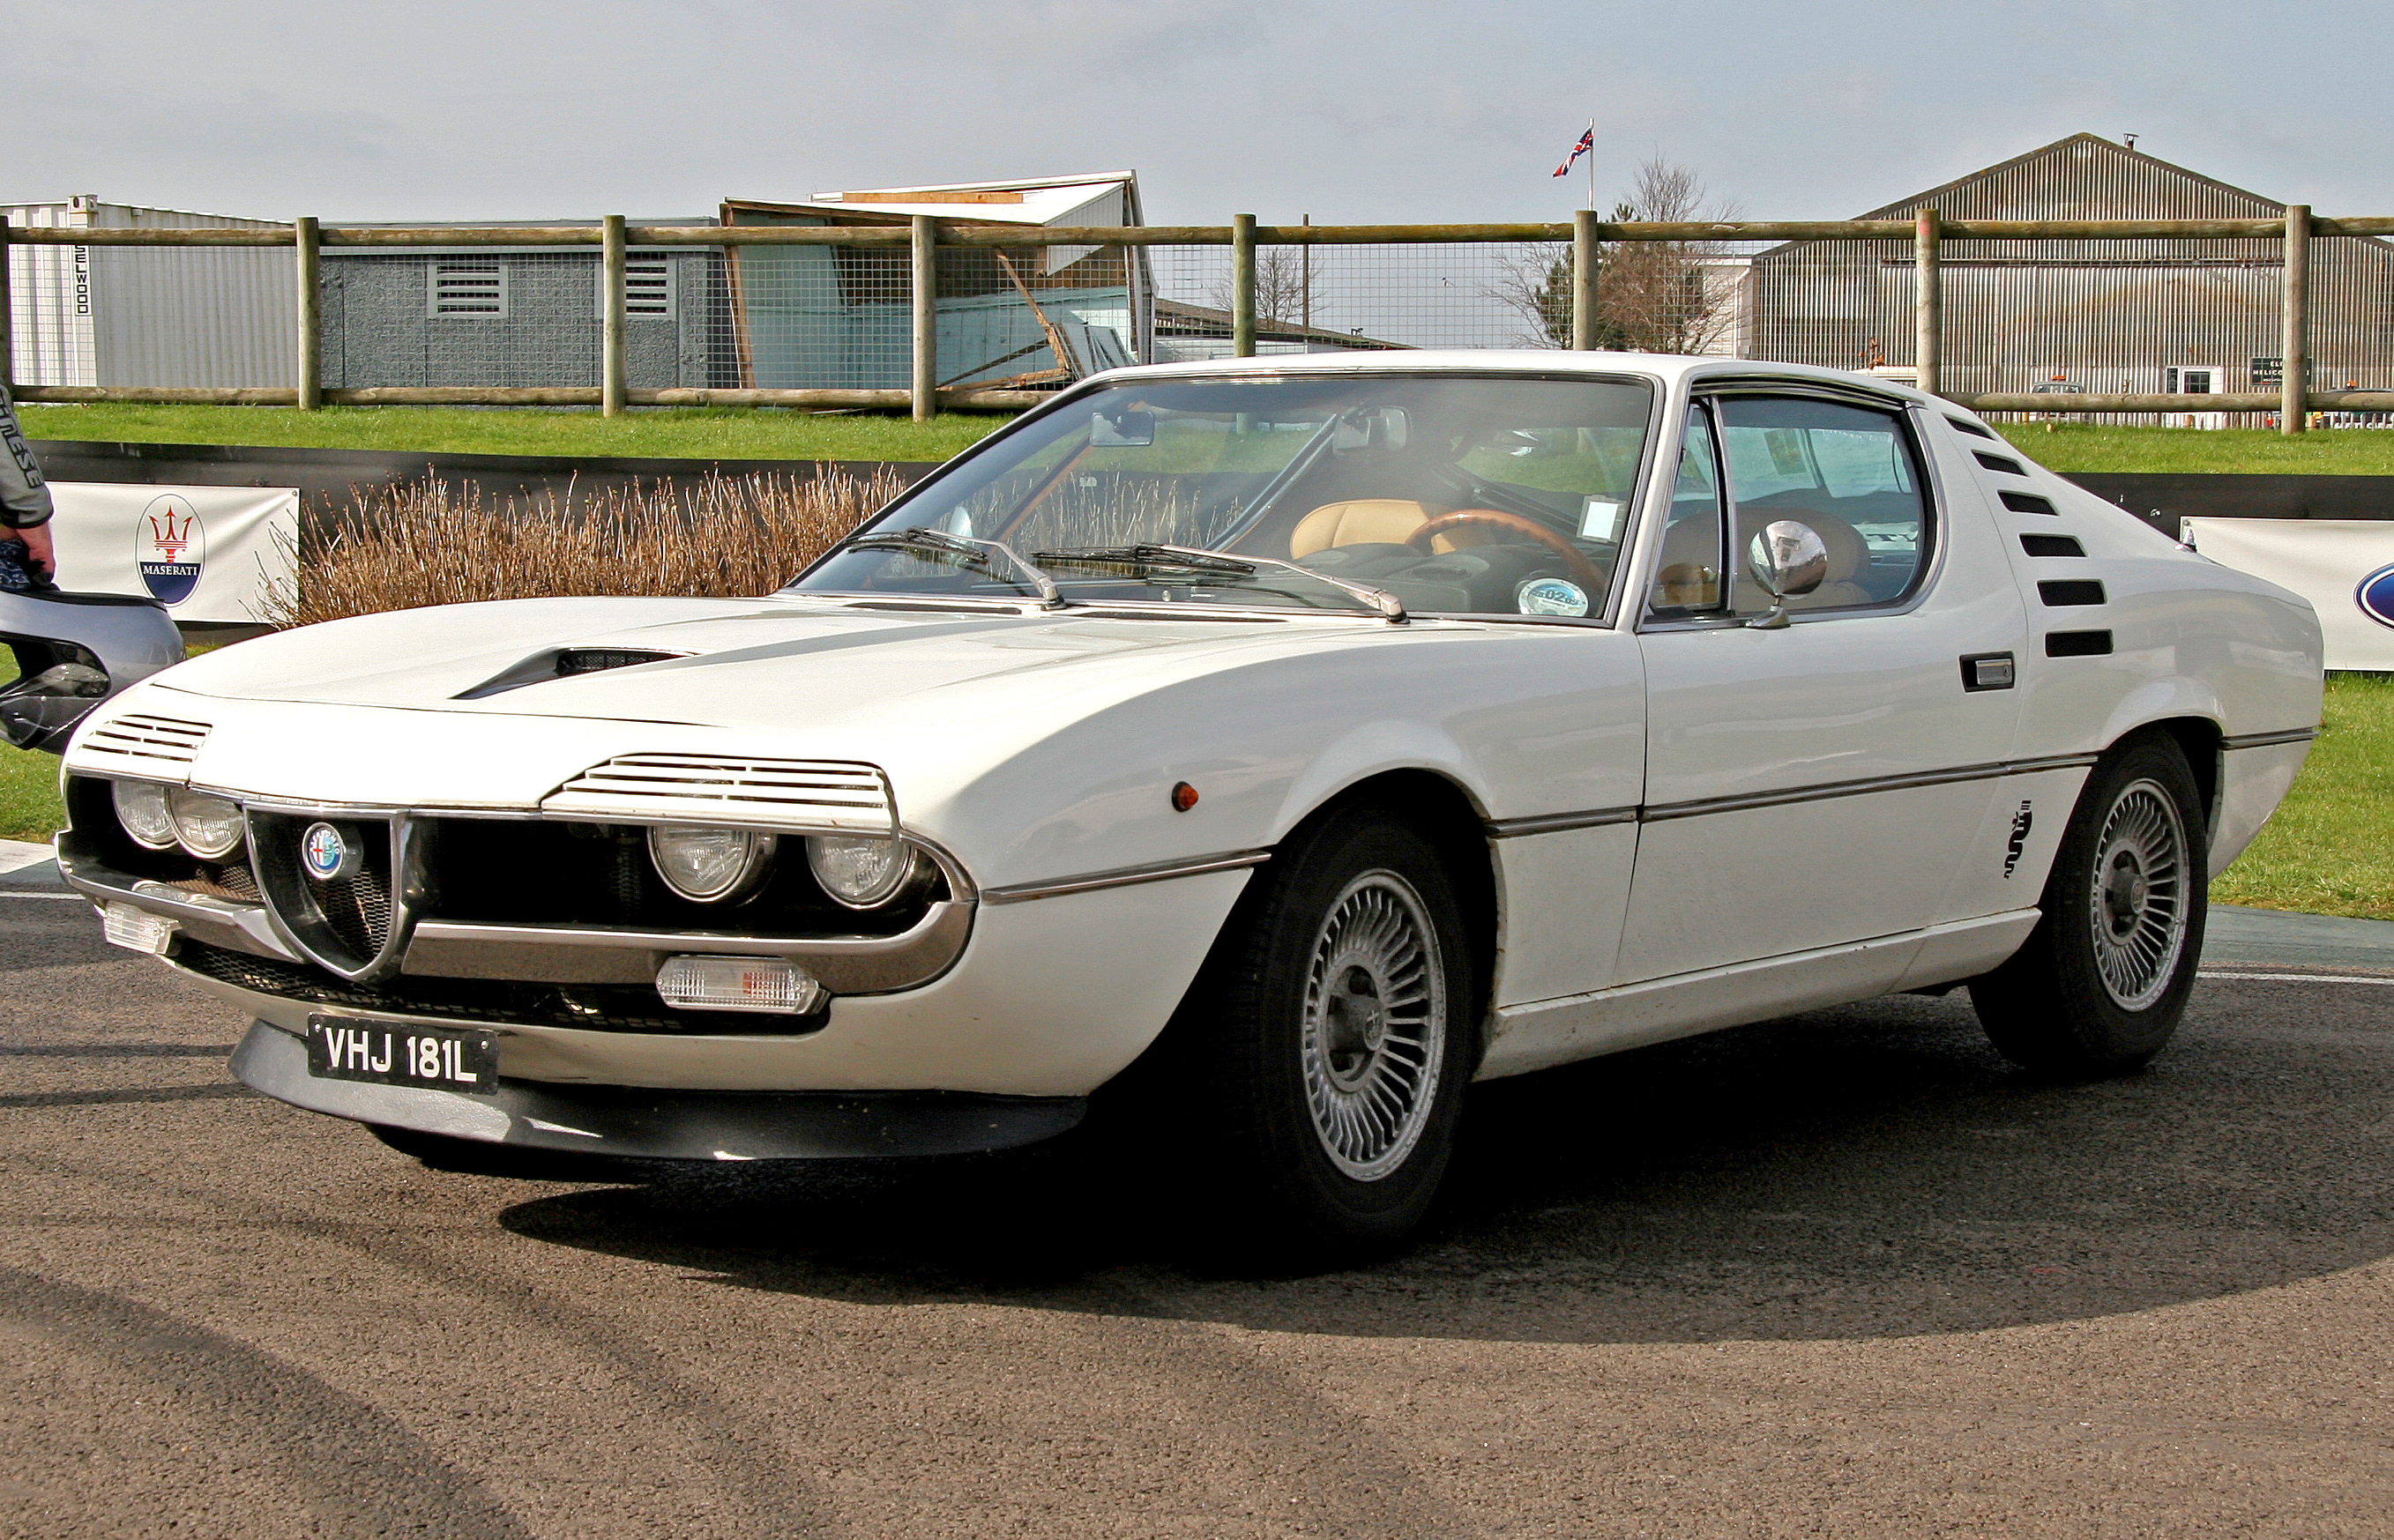 Alfa romeo montreal rhd for sale uk